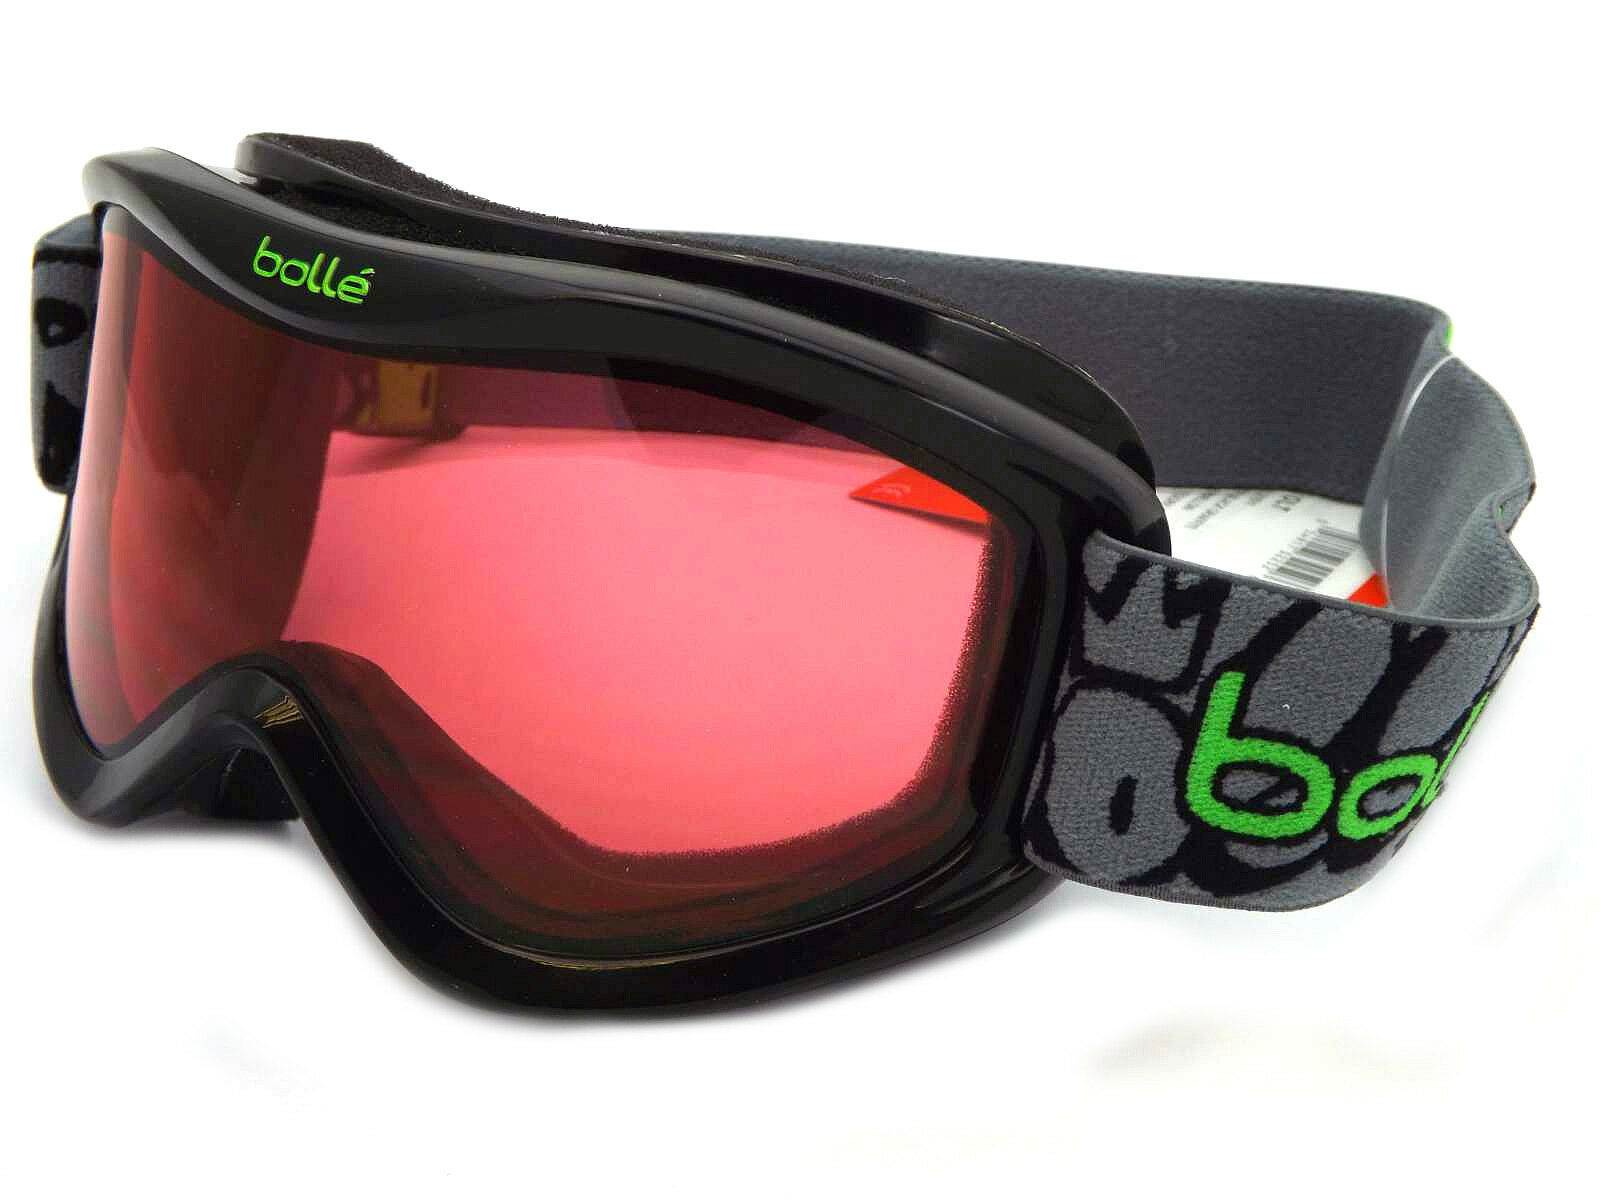 f4509a592a23 Bolle Volt High Performance Junior Goggles Black Graffiti vermillon ...